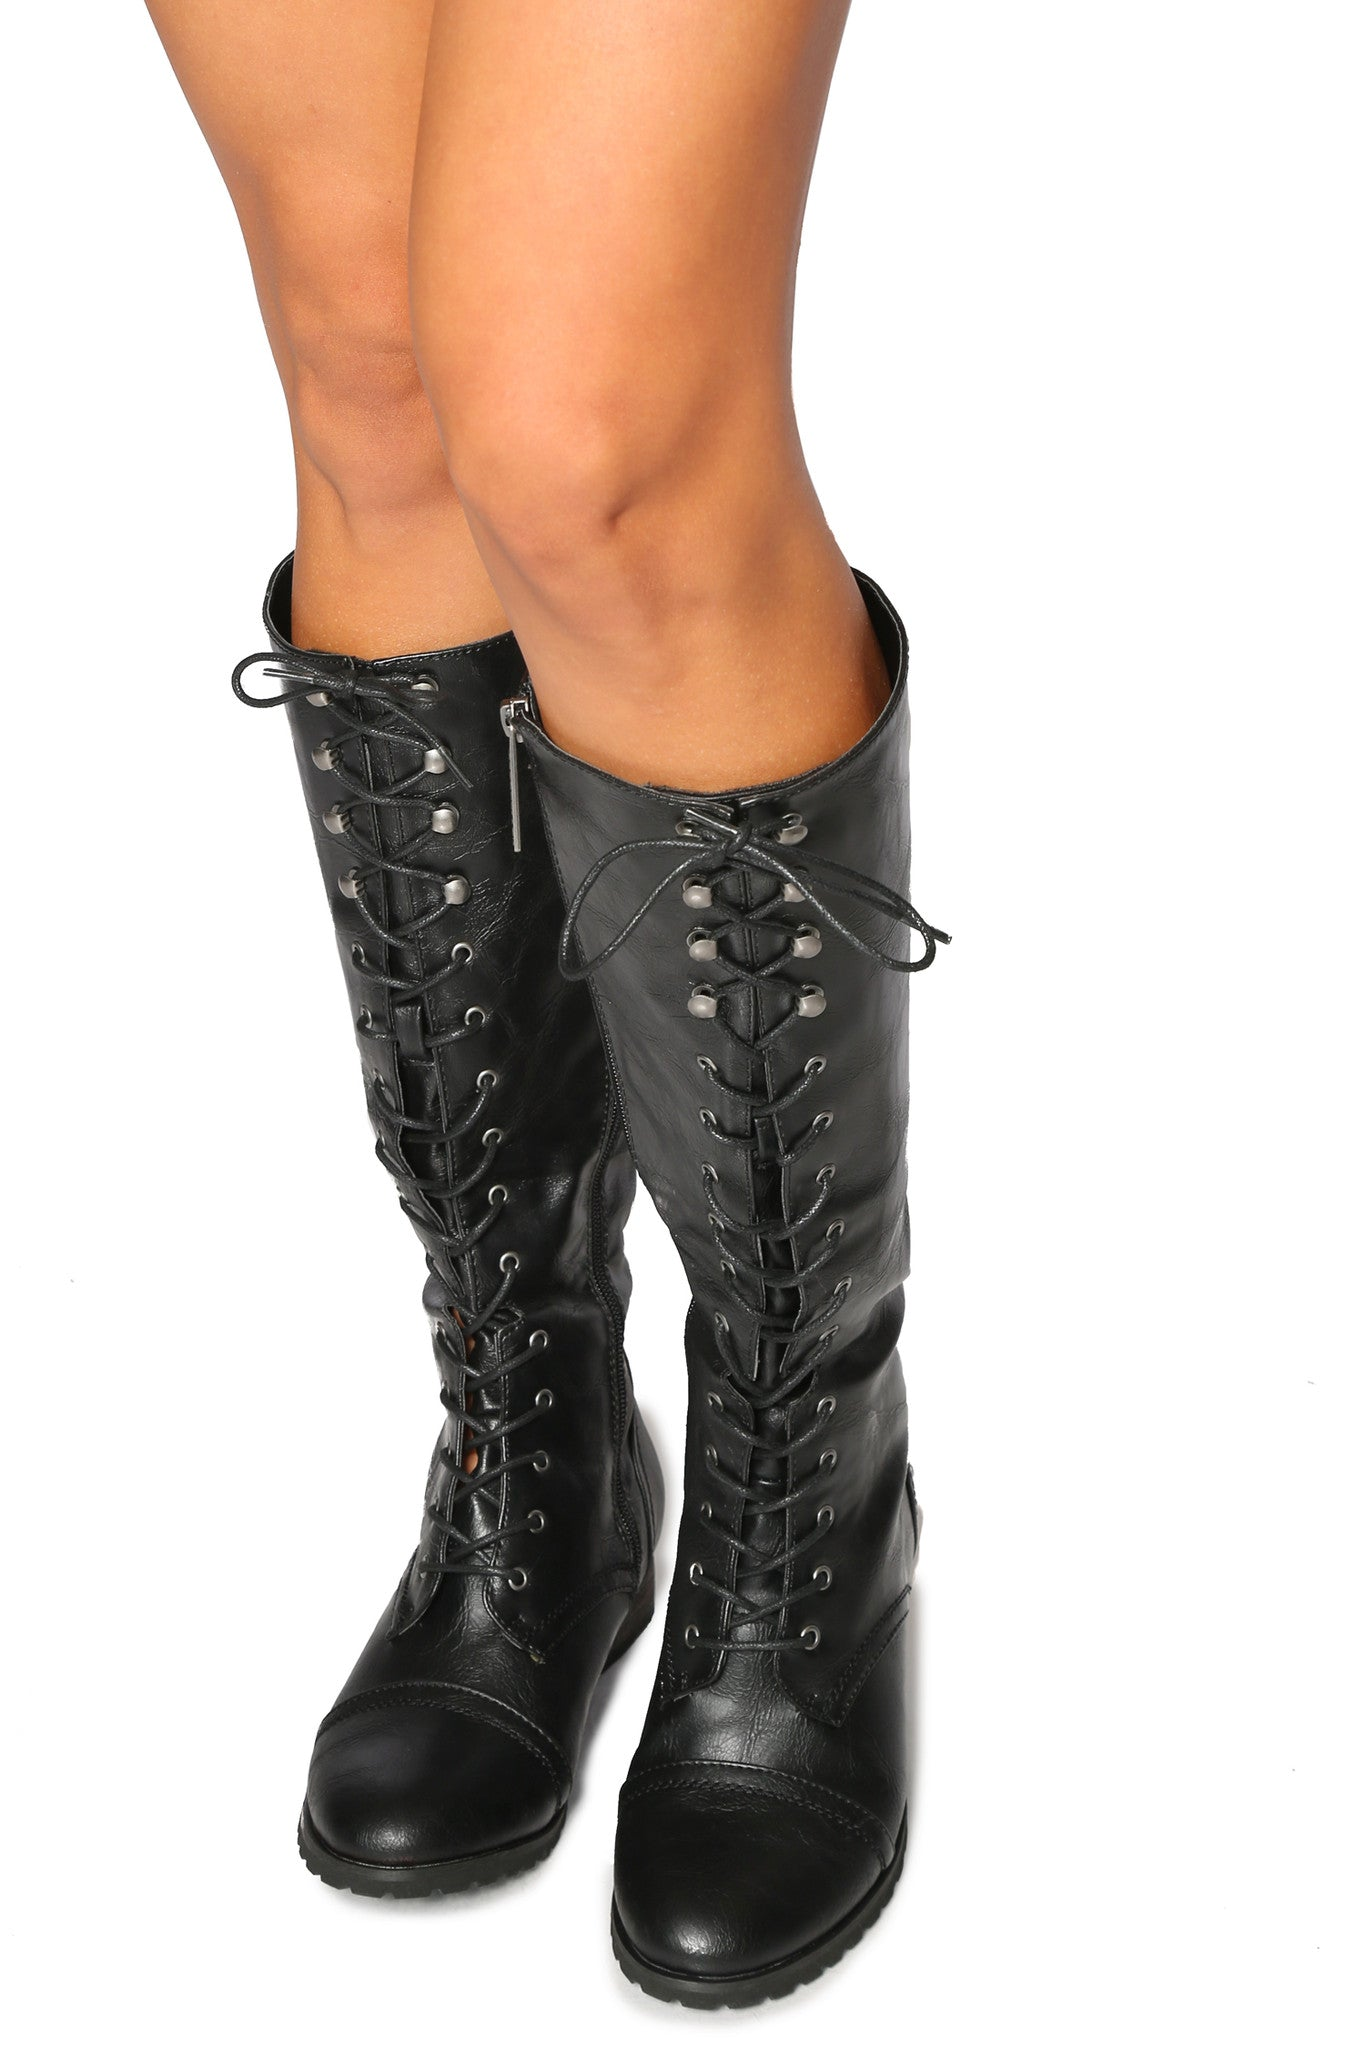 OUTLAW BOOTS - Glam Envy - 1